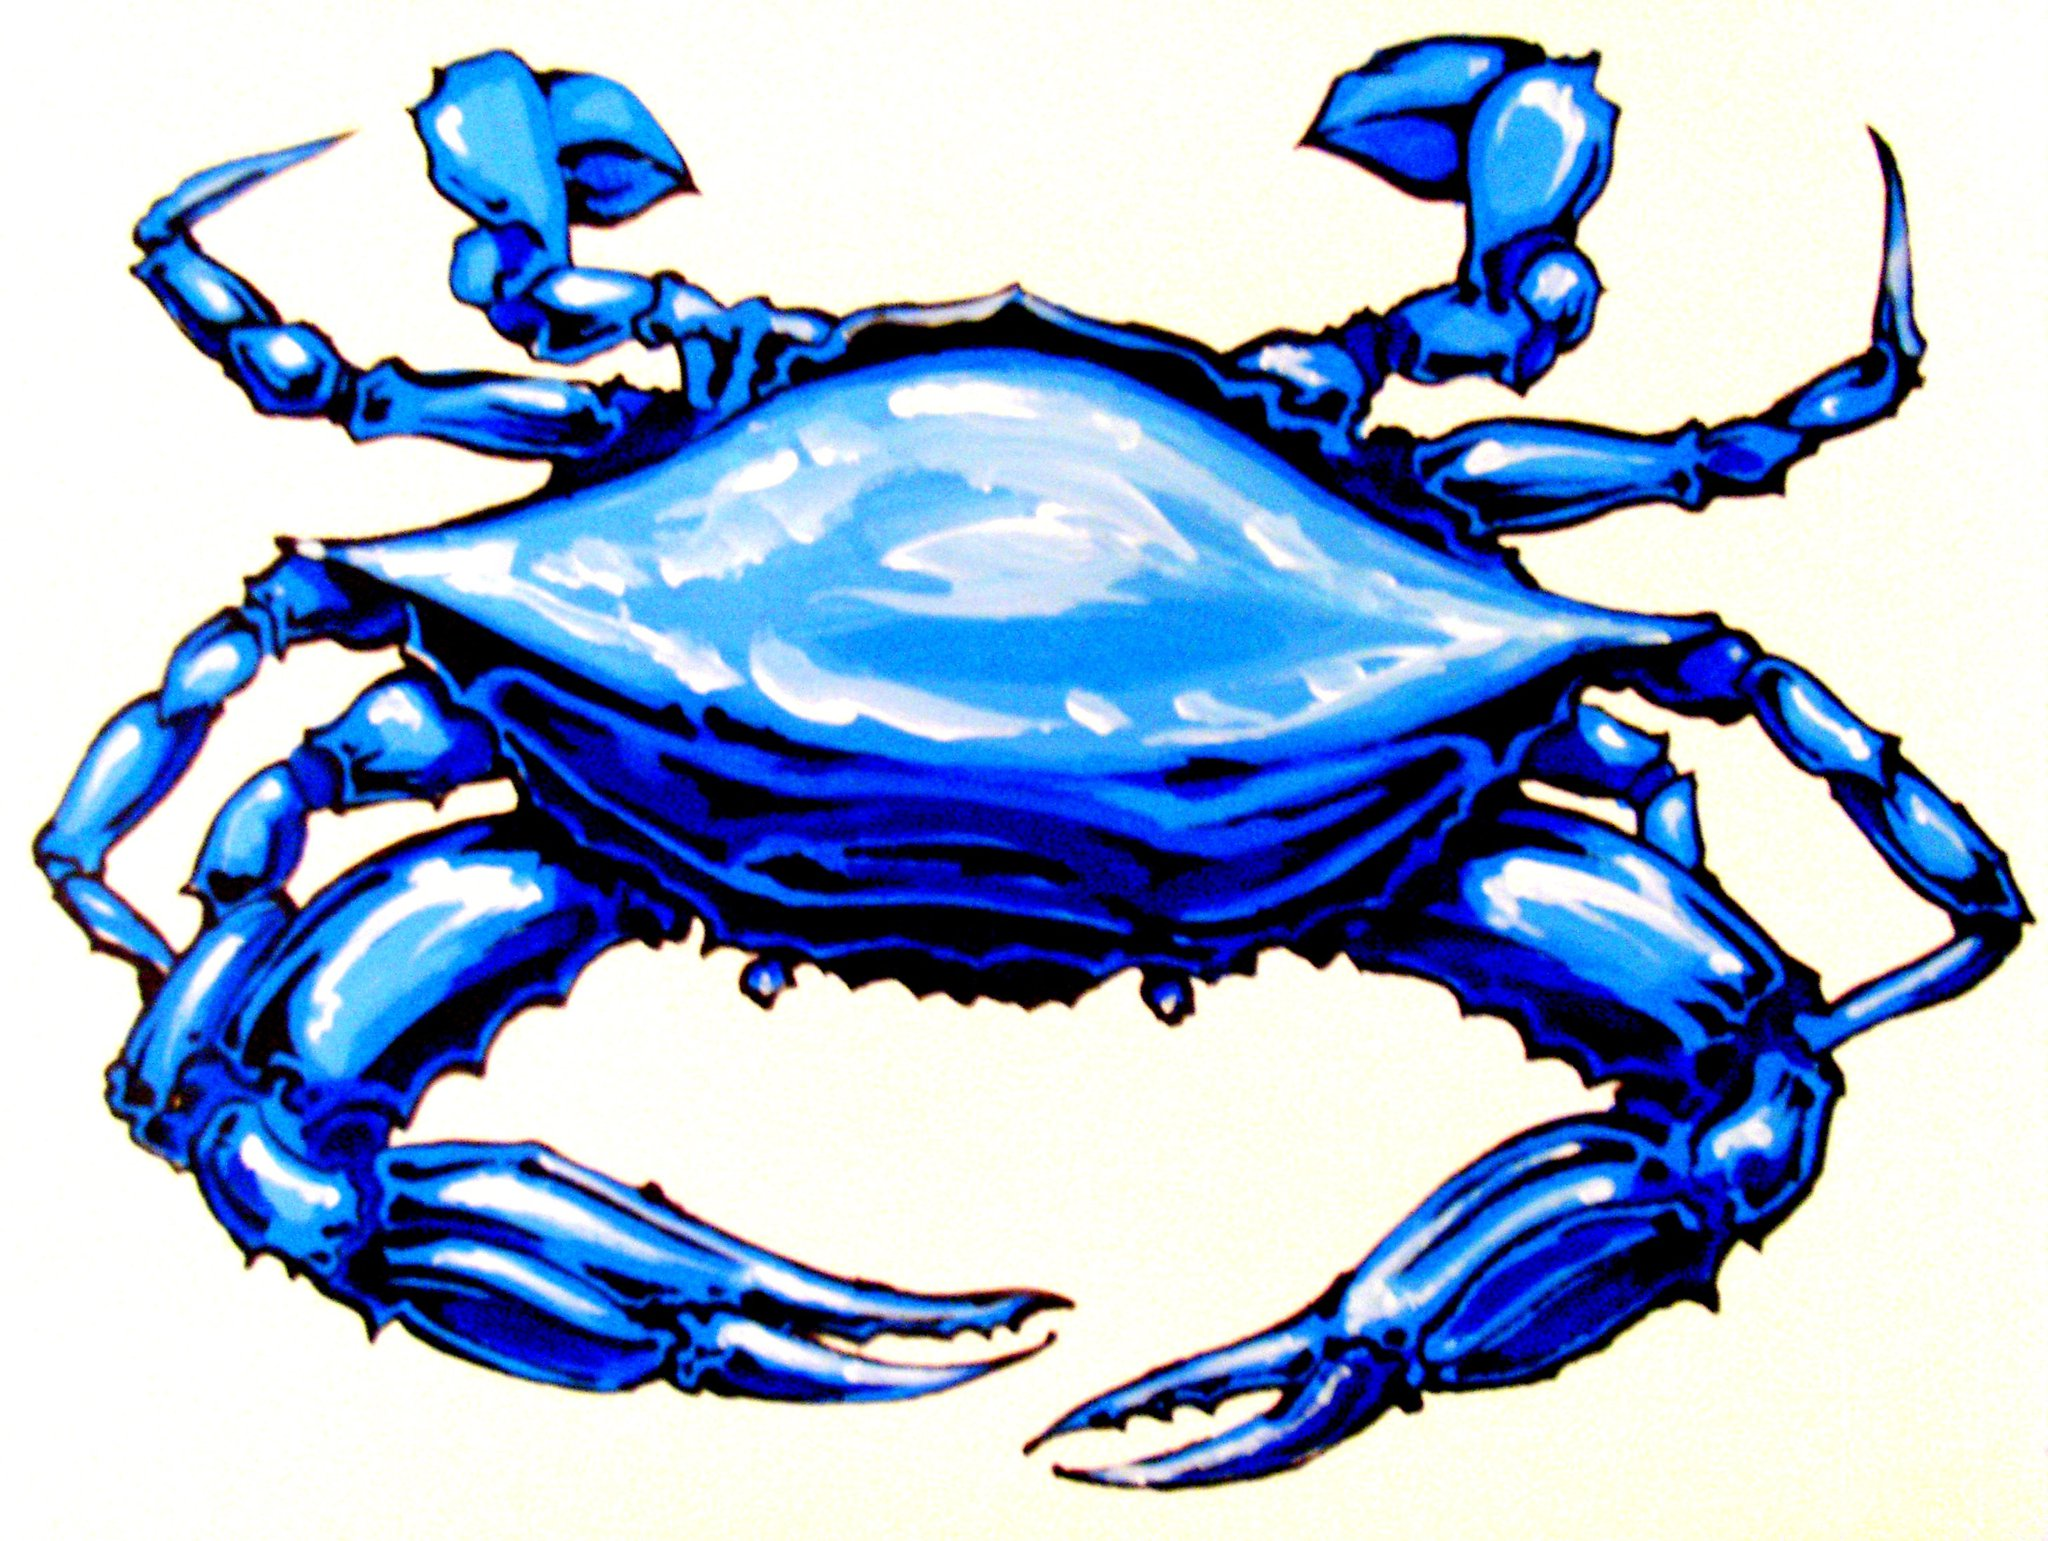 crab clipart at getdrawings com free for personal use crab clipart rh getdrawings com blue crab clip art free maryland blue crab clipart